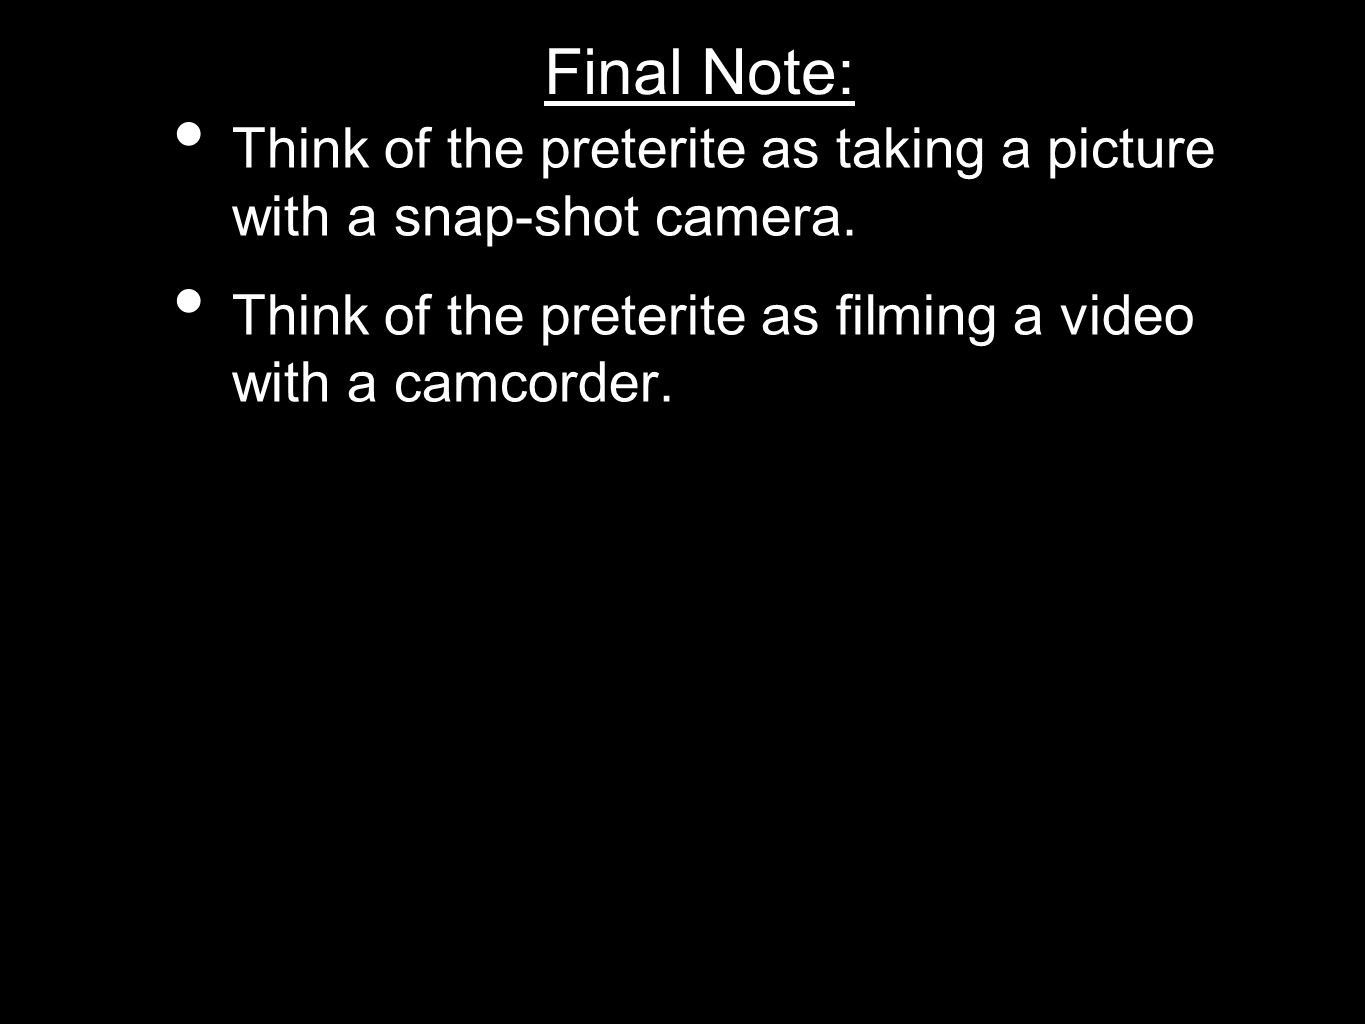 Final Note: Think of the preterite as taking a picture with a snap-shot camera.